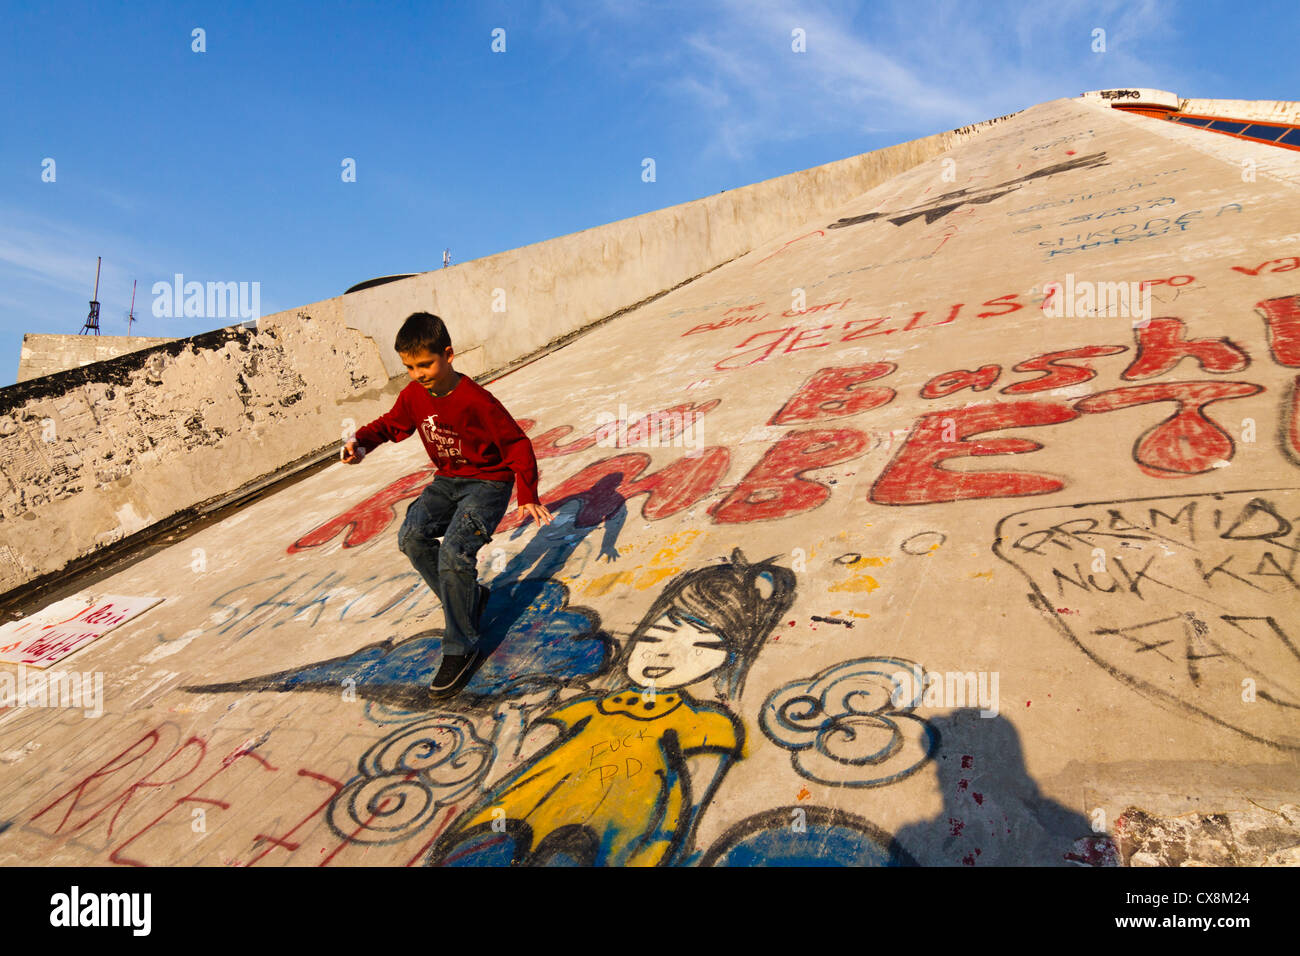 Child climbing the Pyramid, the former International Center of Culture. Tirana, Albania - Stock Image